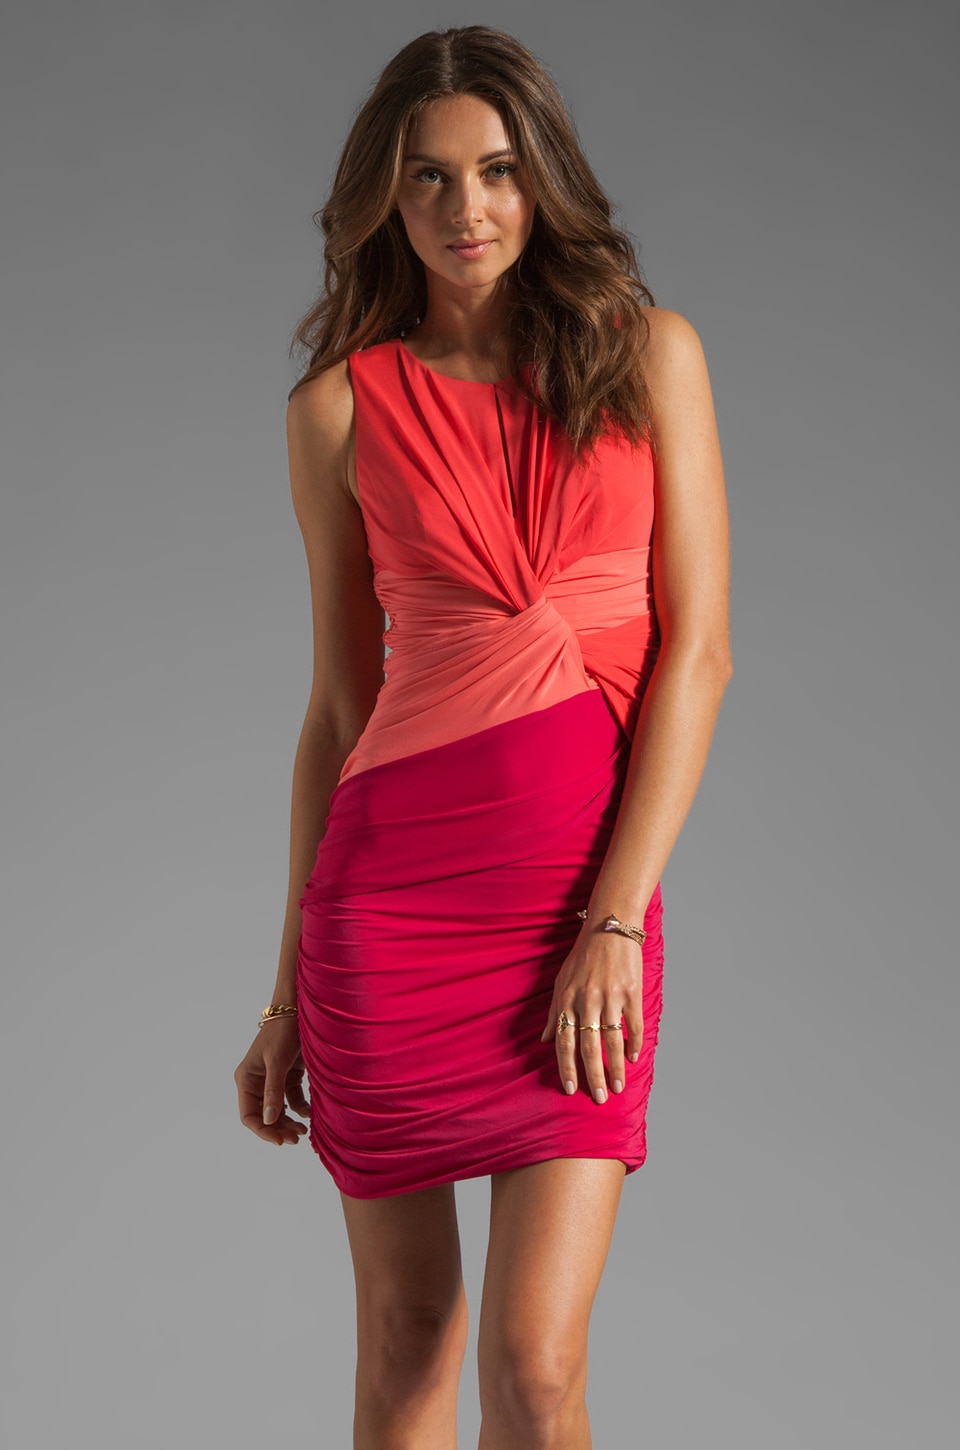 Halston Heritage Colorblock Twist Dress in Poppy/Guava/Raspberry